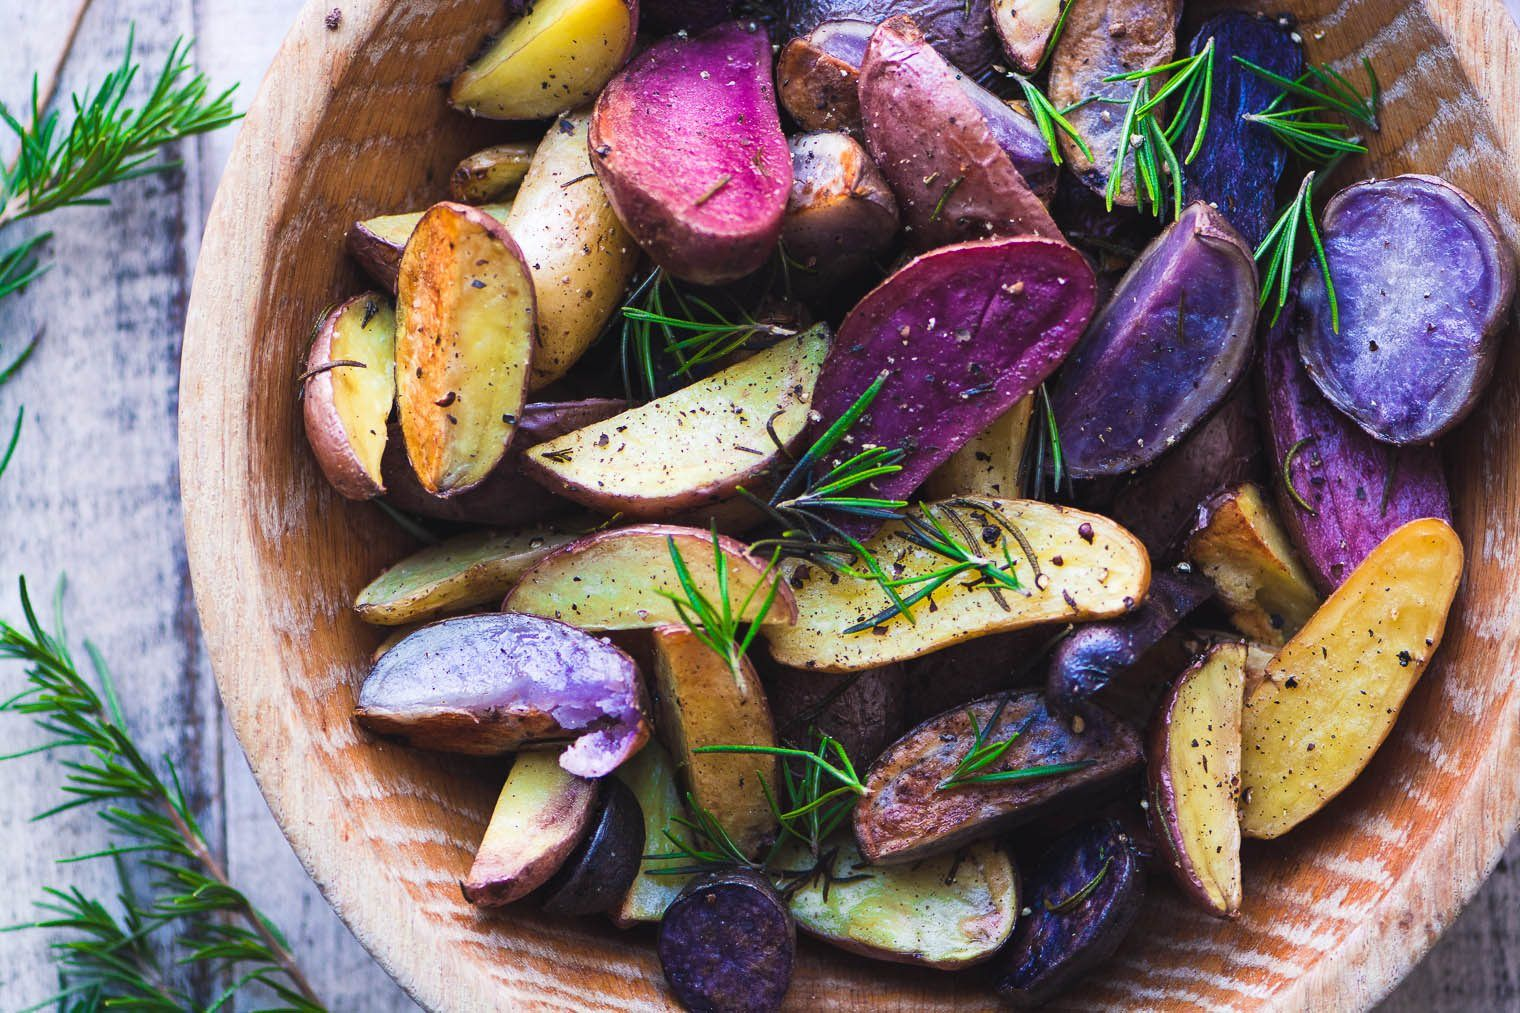 Rosemary Roasted Rainbow Potatoes are a colorful and easy side dish that brings some excitement to the table, and they're no more trouble to make than regular roasted potatoes. #sidedish #rainbow #newpotatoes #roastedpotatoes #easysidedish #dinner #redpotatoes #bluepotatoes #purplepotatoes #recipe #easy